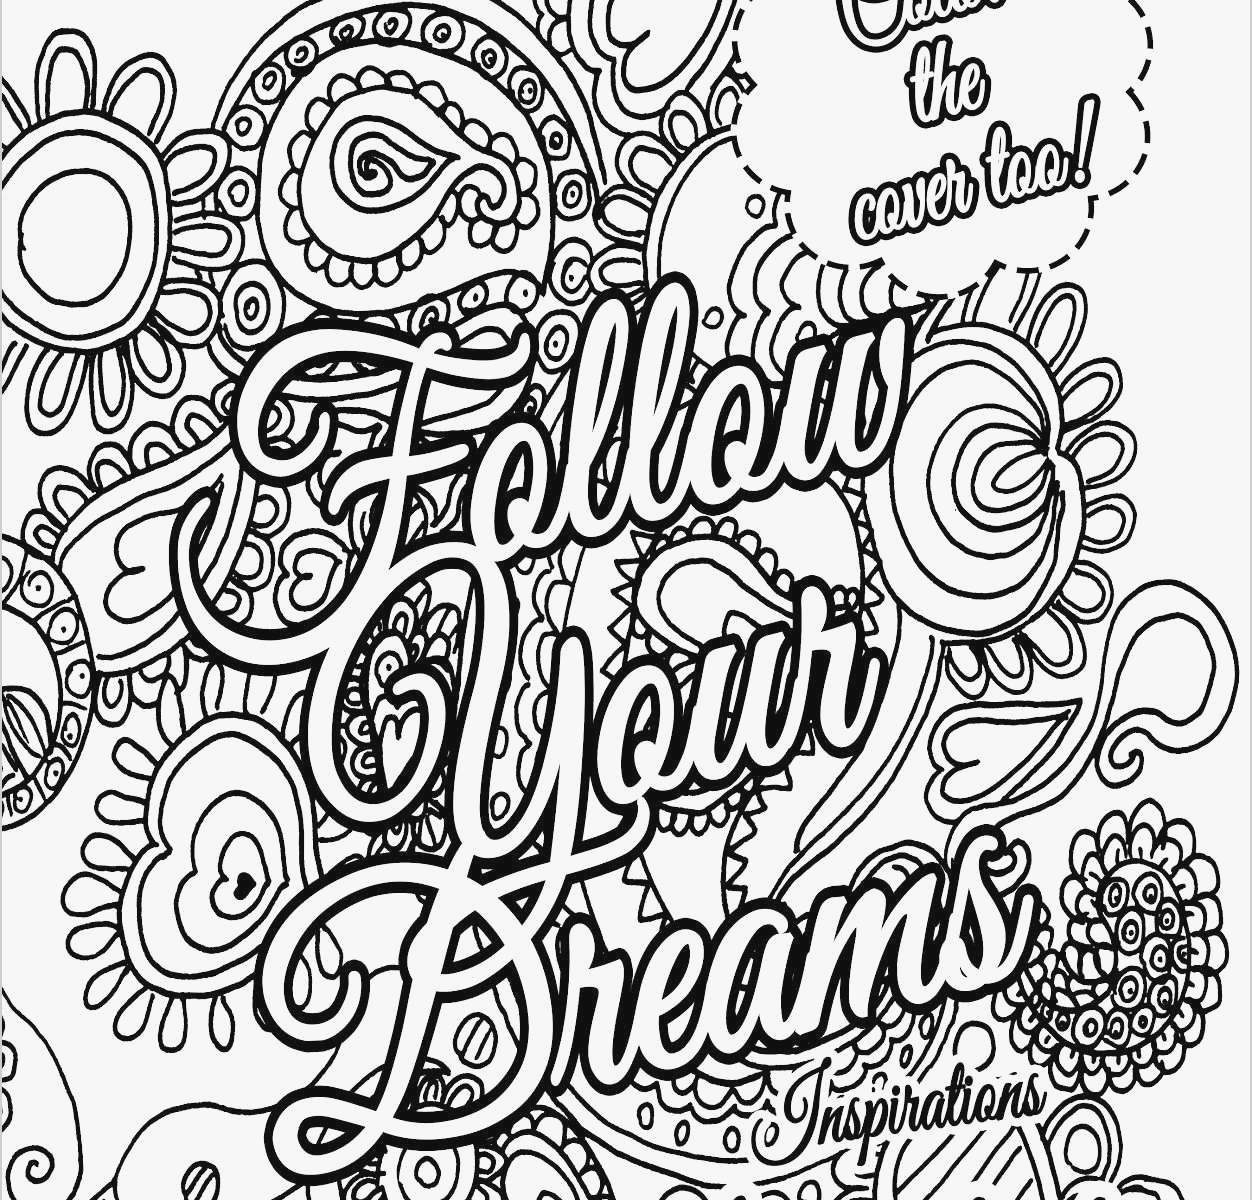 photo about Free Printable Adult Coloring Pages Quotes known as Coloring Webpages Prices Get pleasure from Grows Colouring Artwork Grownup